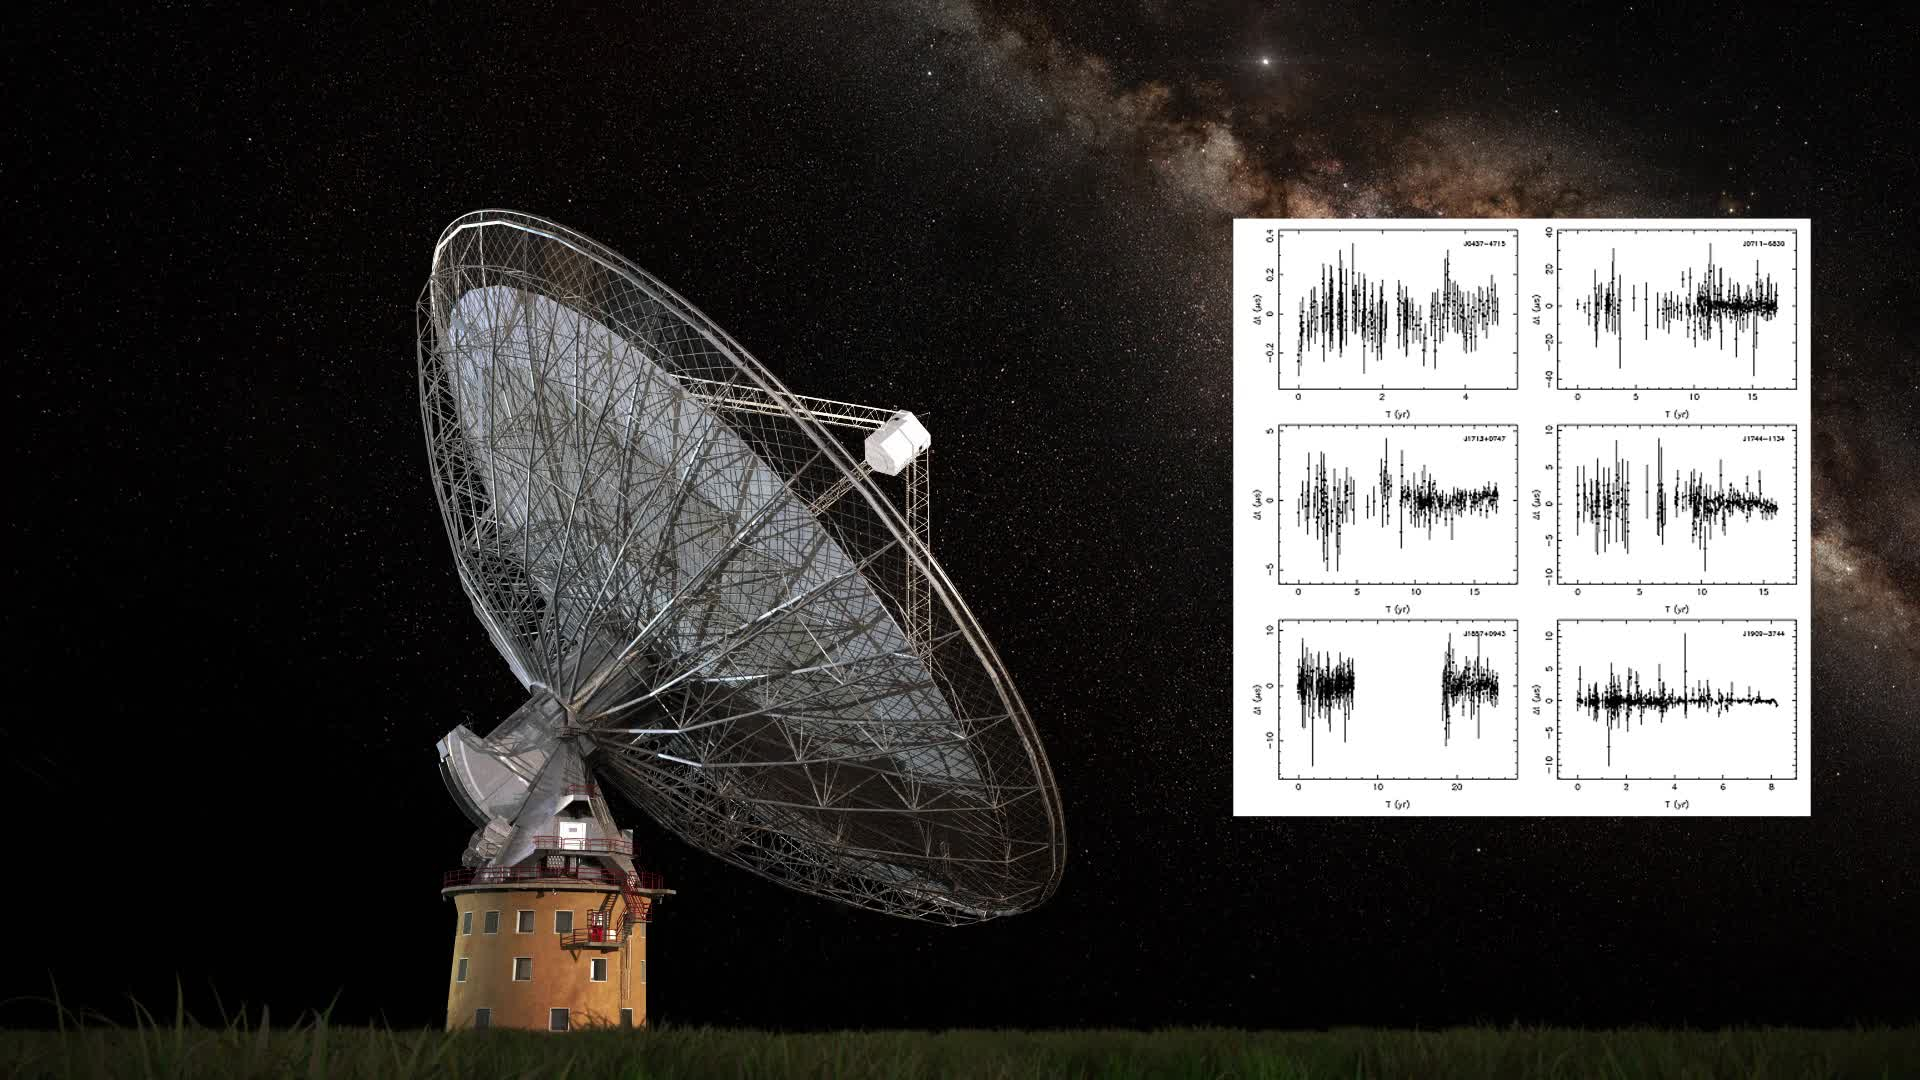 Gravitational waves distort space, altering the regular signals from pulsars received by the CSIRO Parkes Radio Telescope. Credit: Swinburne Astronomy Productions.